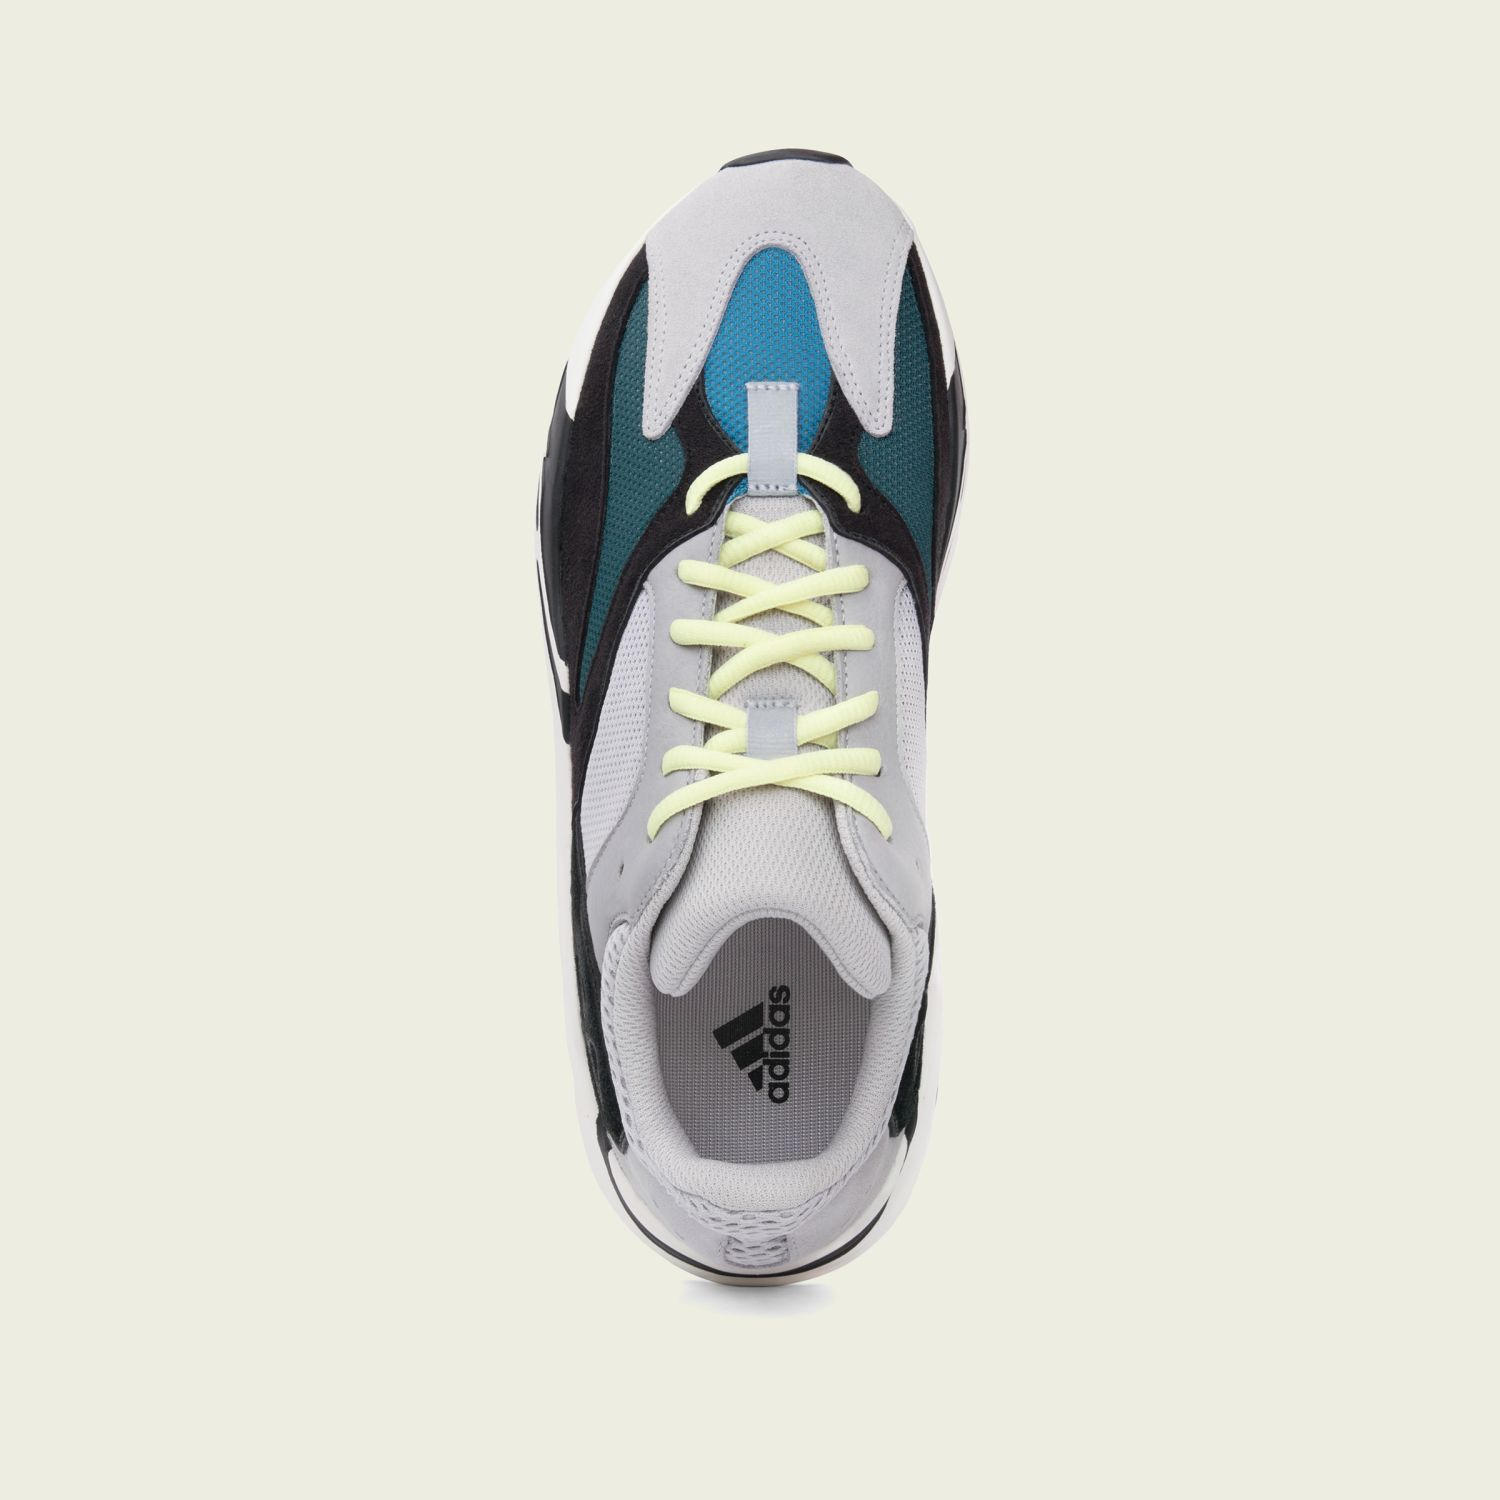 Yeezy Wave Runner 700 Solid Grey [3]